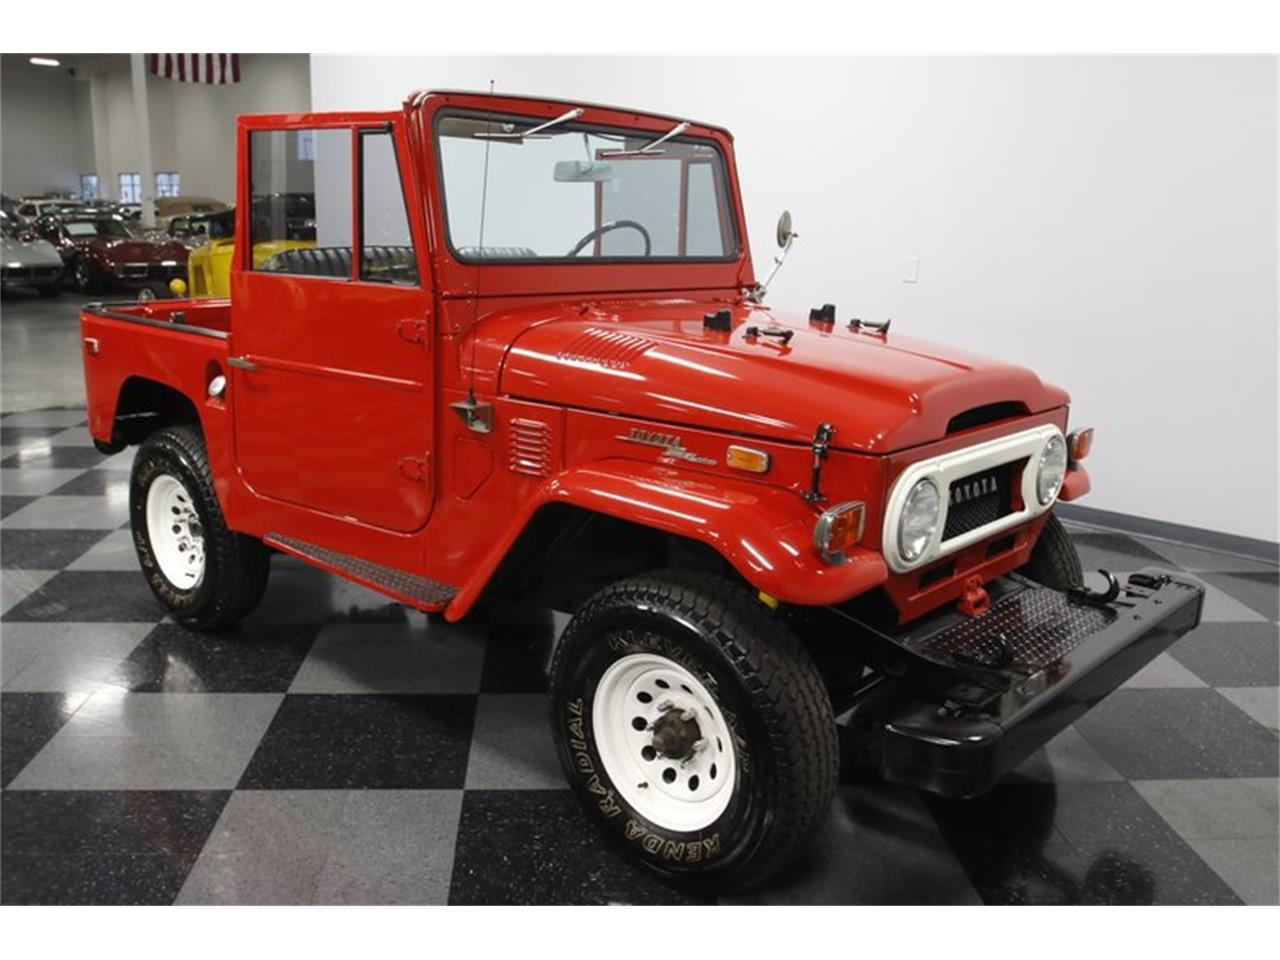 Large Picture of Classic '72 Toyota Land Cruiser FJ - $26,995.00 Offered by Streetside Classics - Charlotte - N3MA